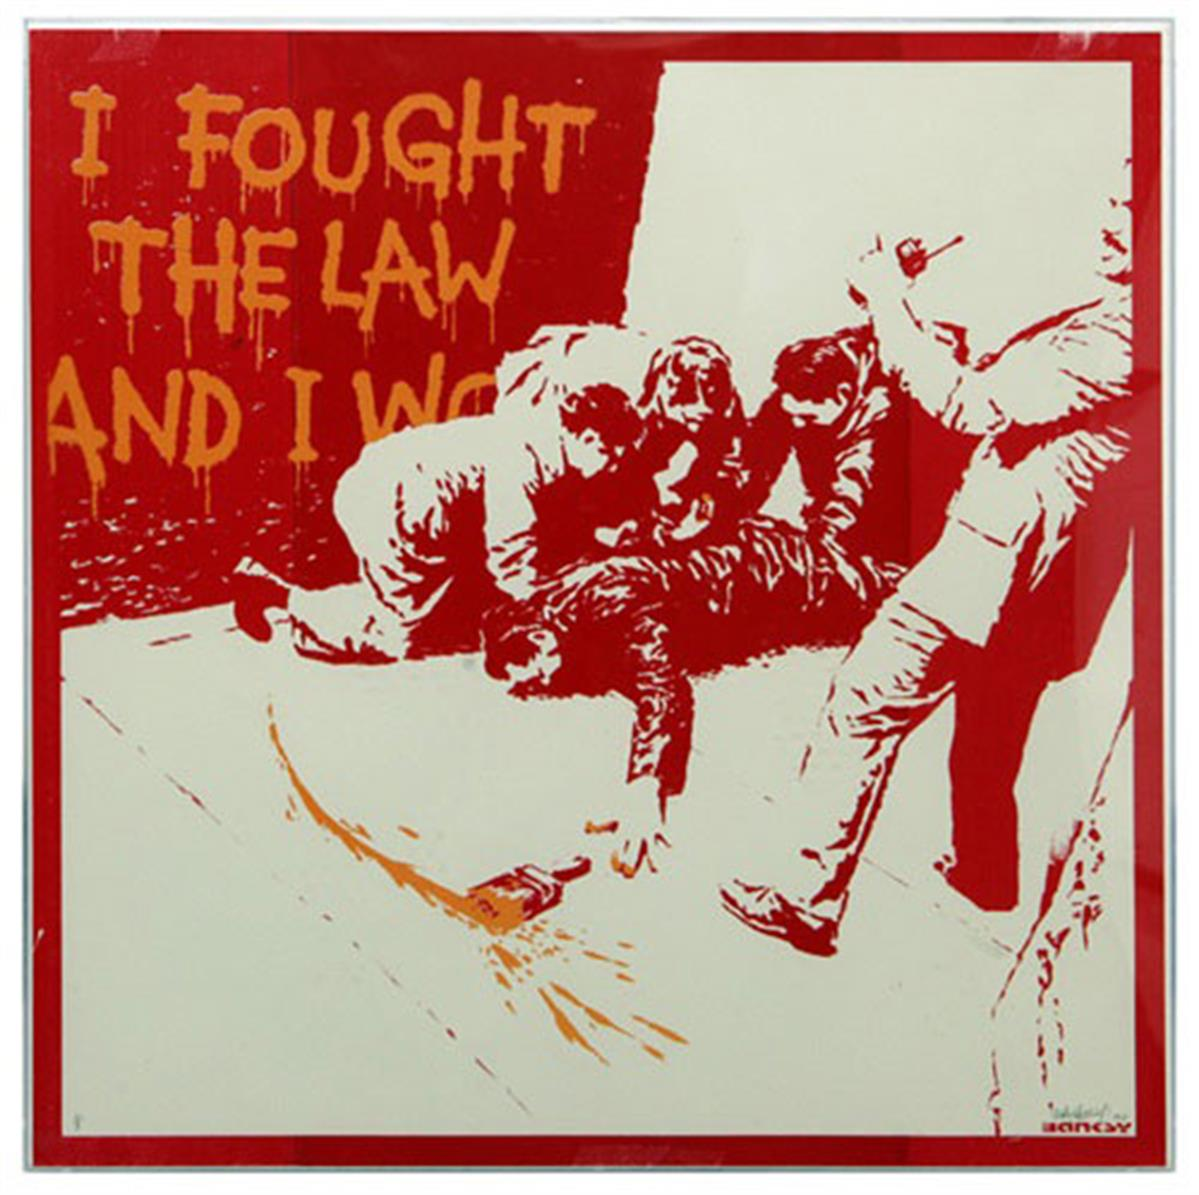 I fought the law (orange) by Banksy